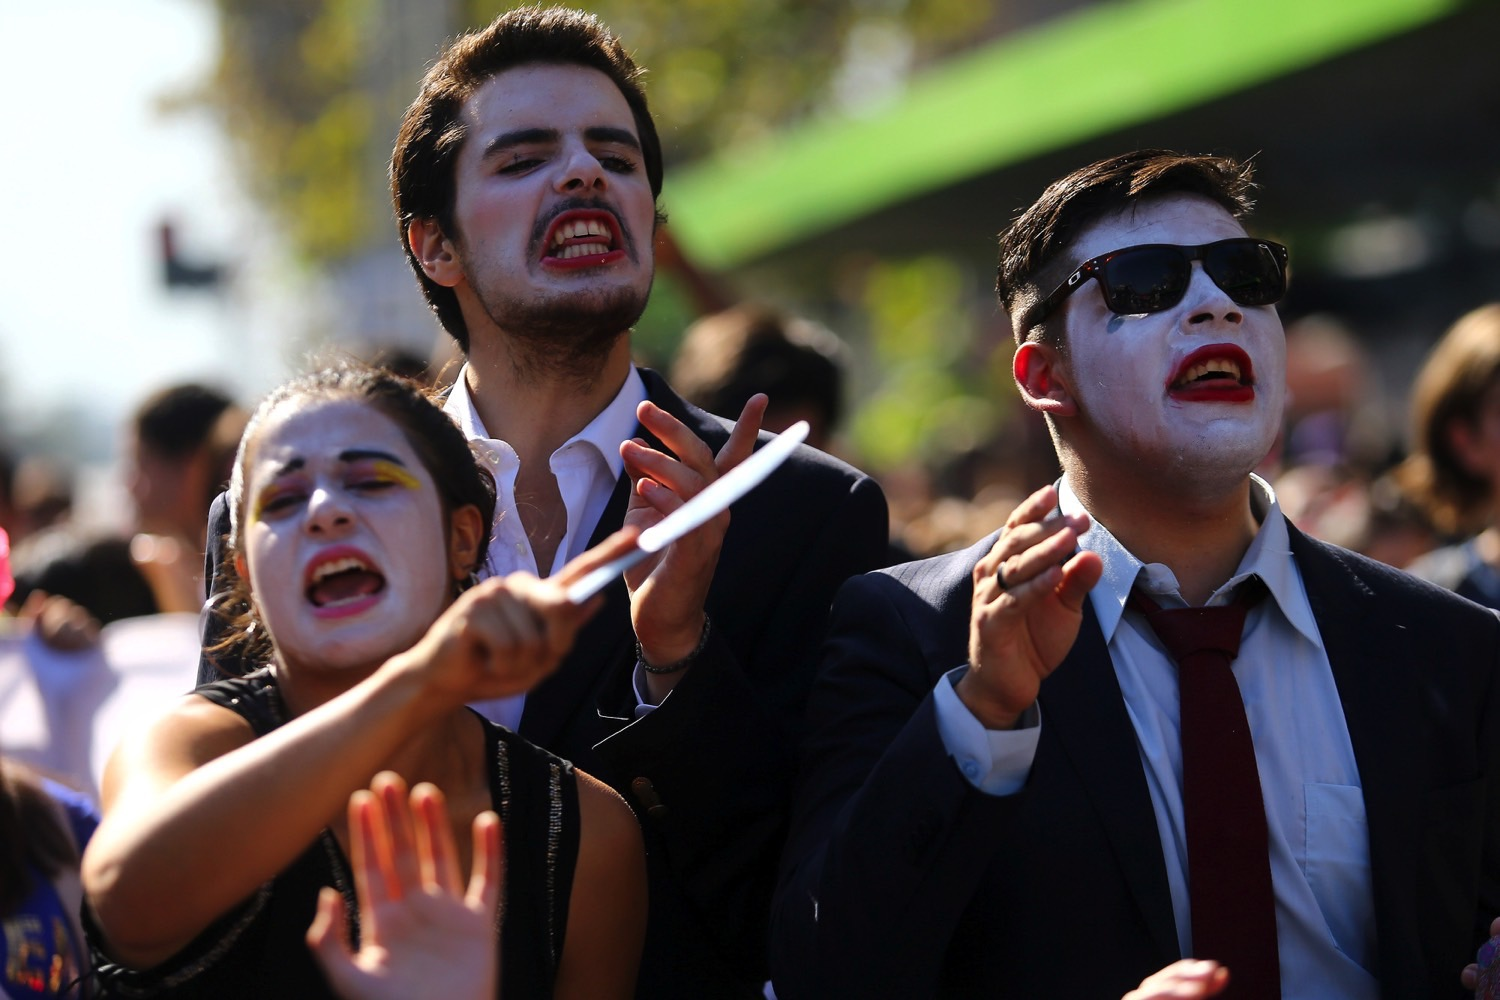 Demonstrators shout slogans during a protest calling for changes in the education system in Santiago, Chile April 11, 2017. Credit: REUTERS/Ivan Alvarado